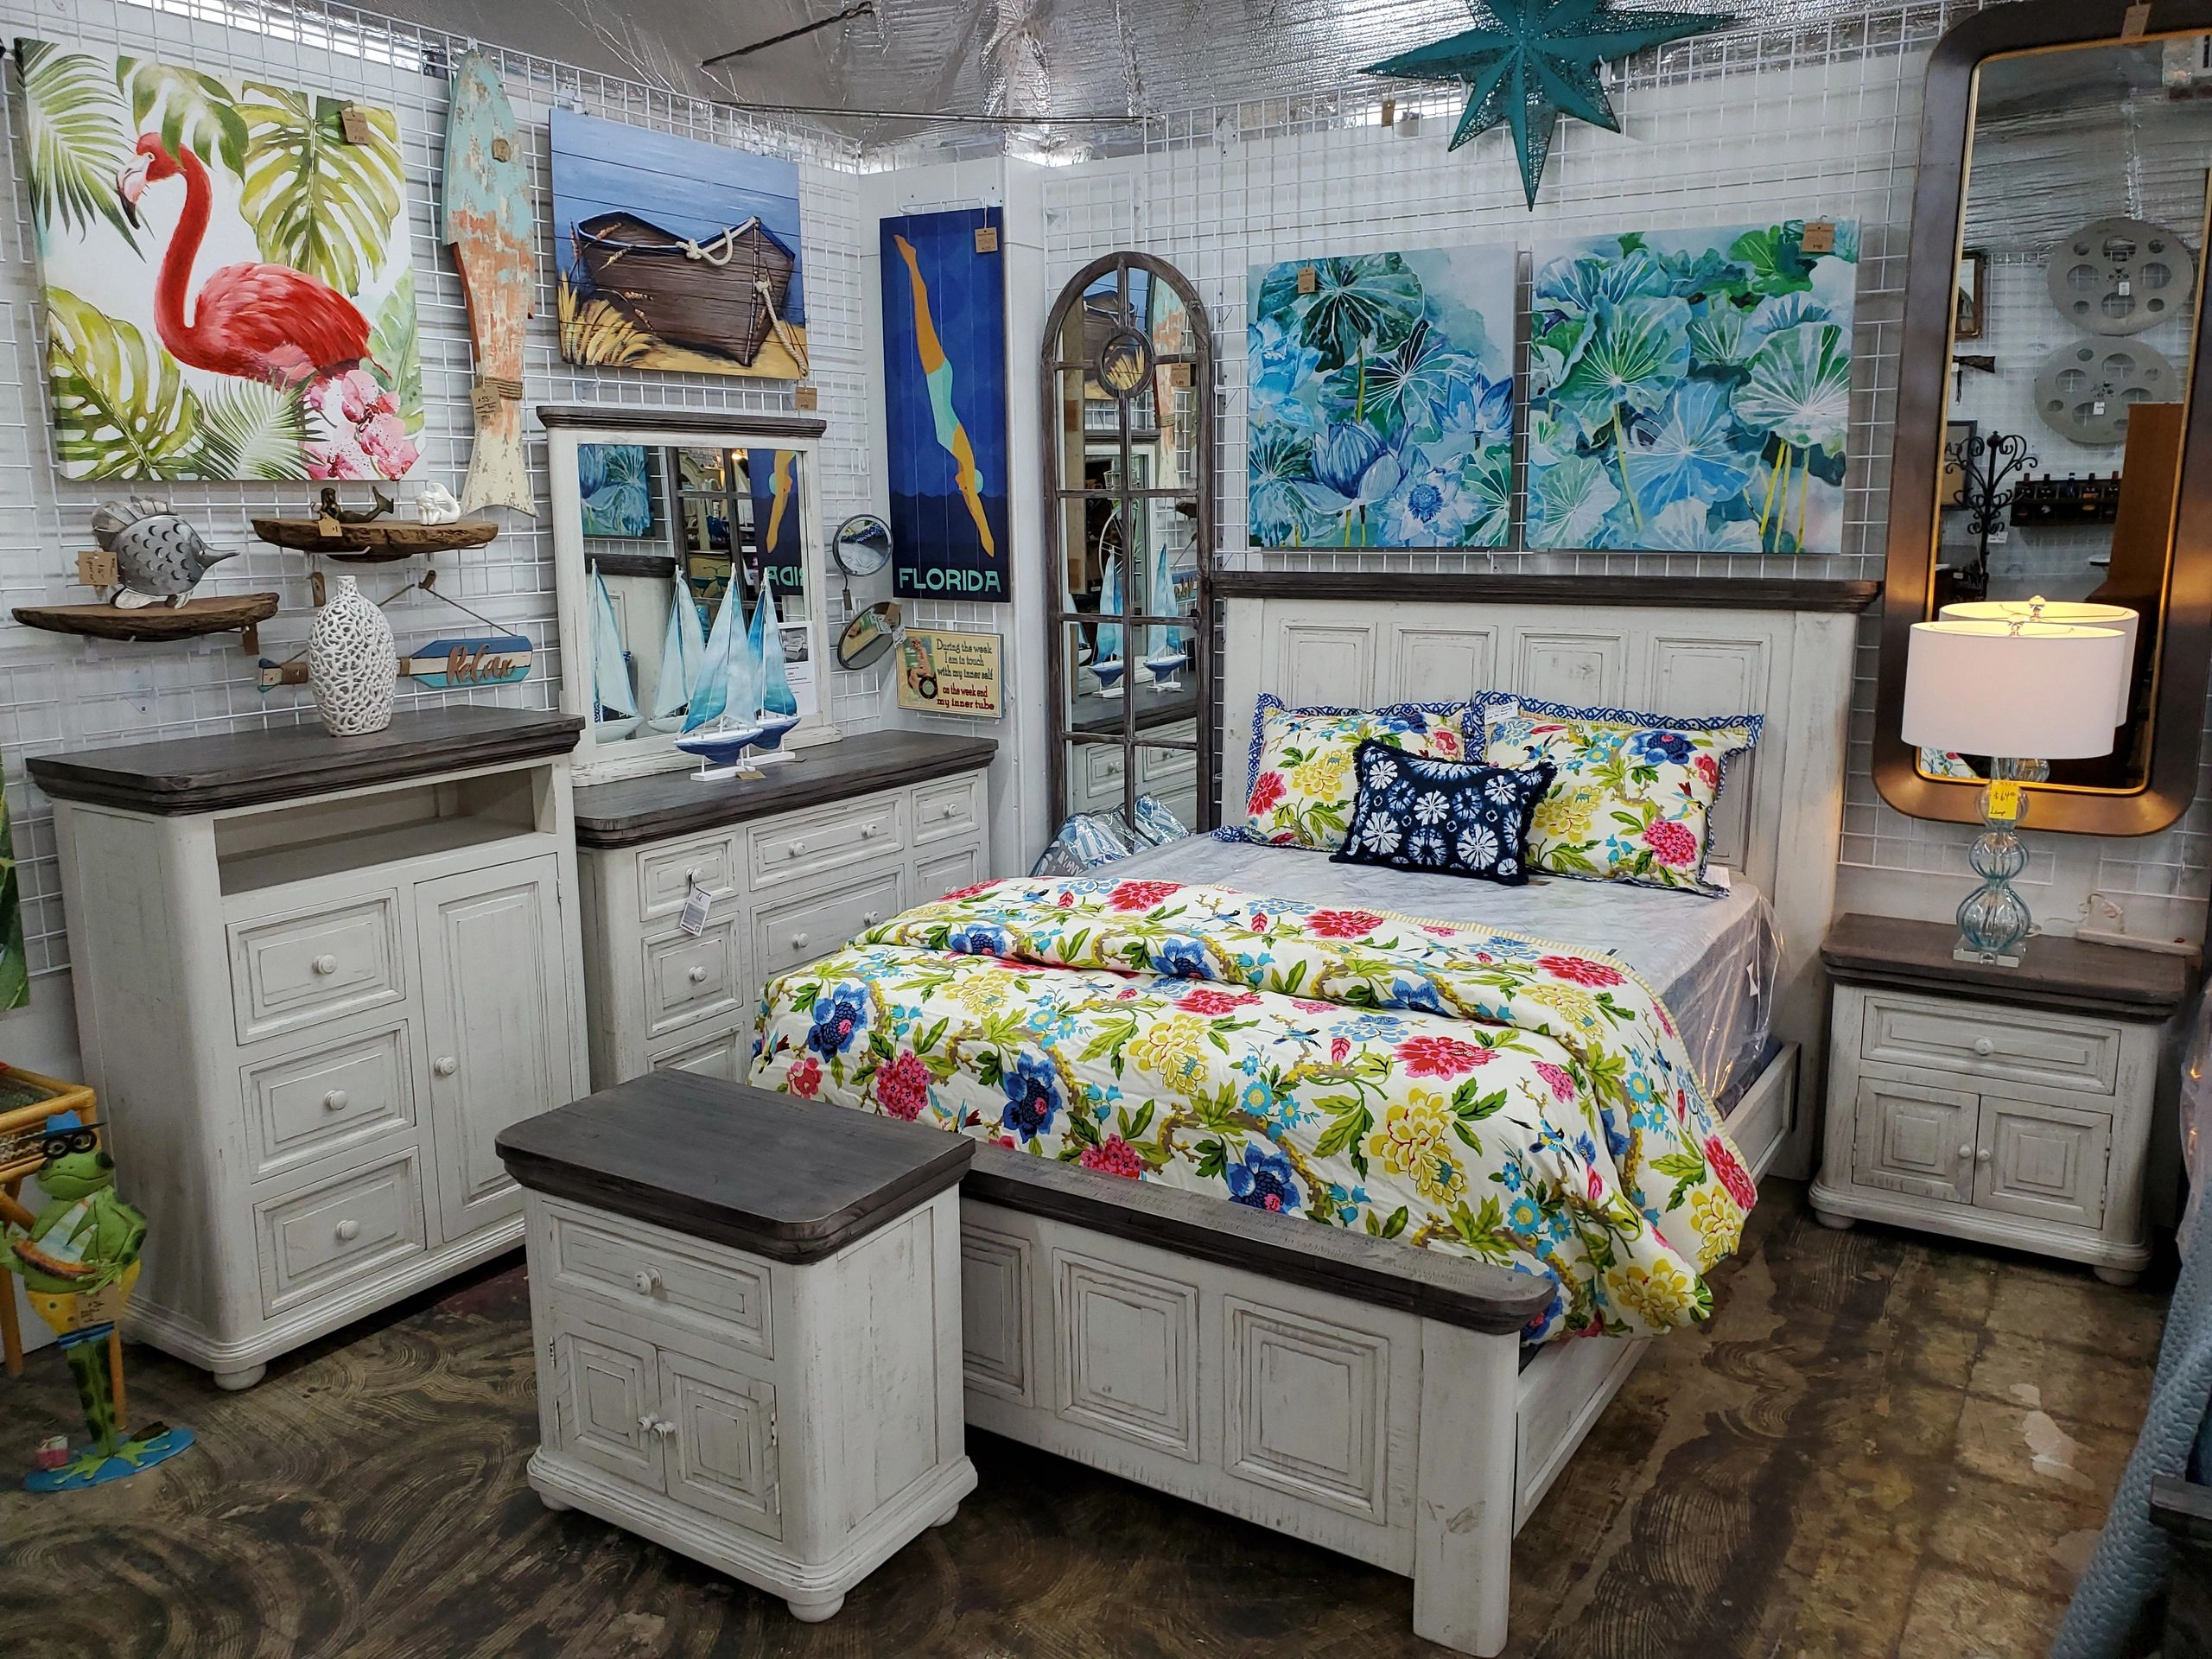 Resale Used Furniture Thrifty Nikki S